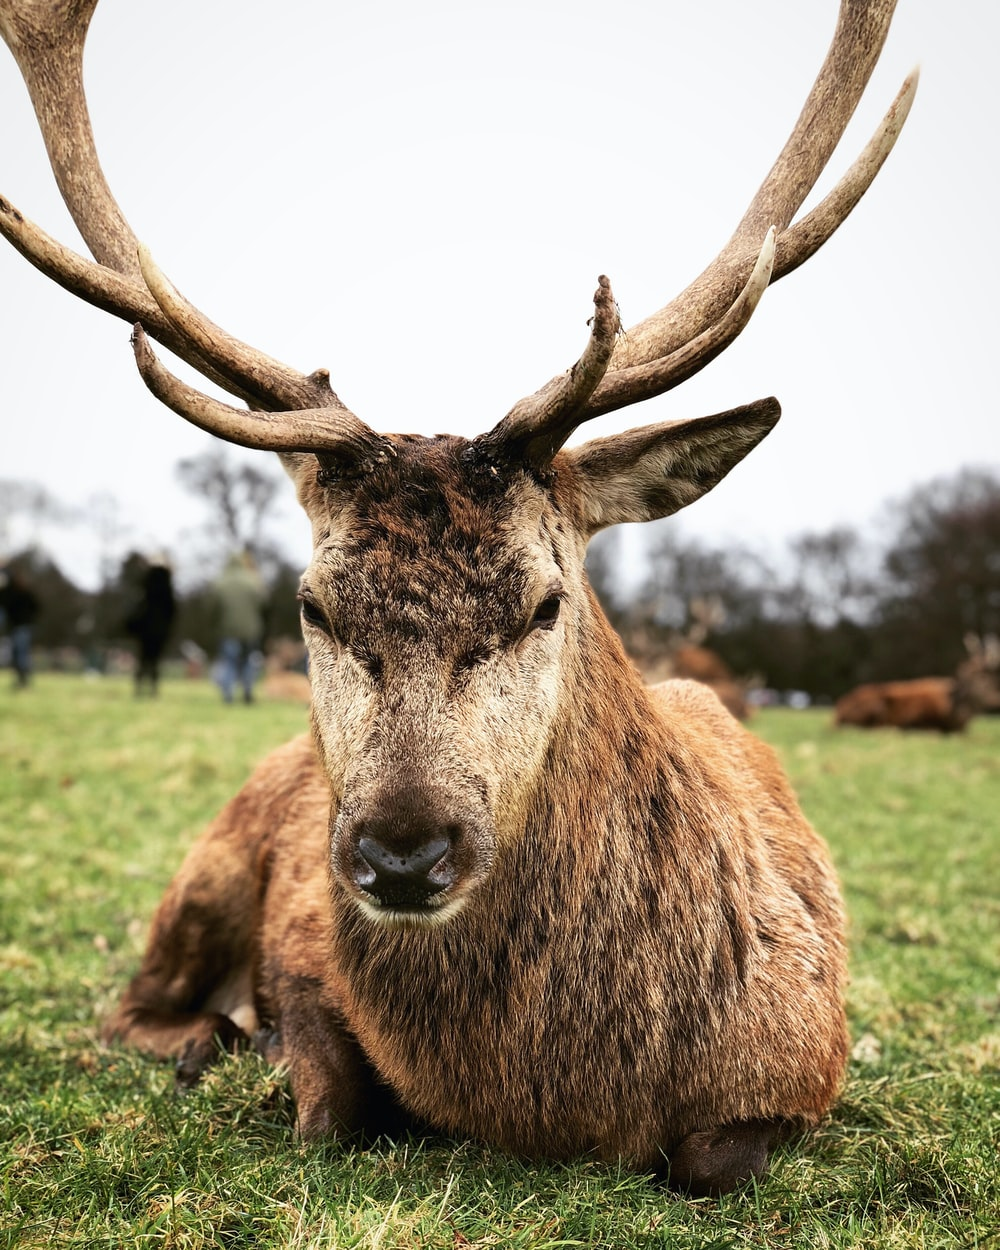 brown stag sitting on green grass field during daytime